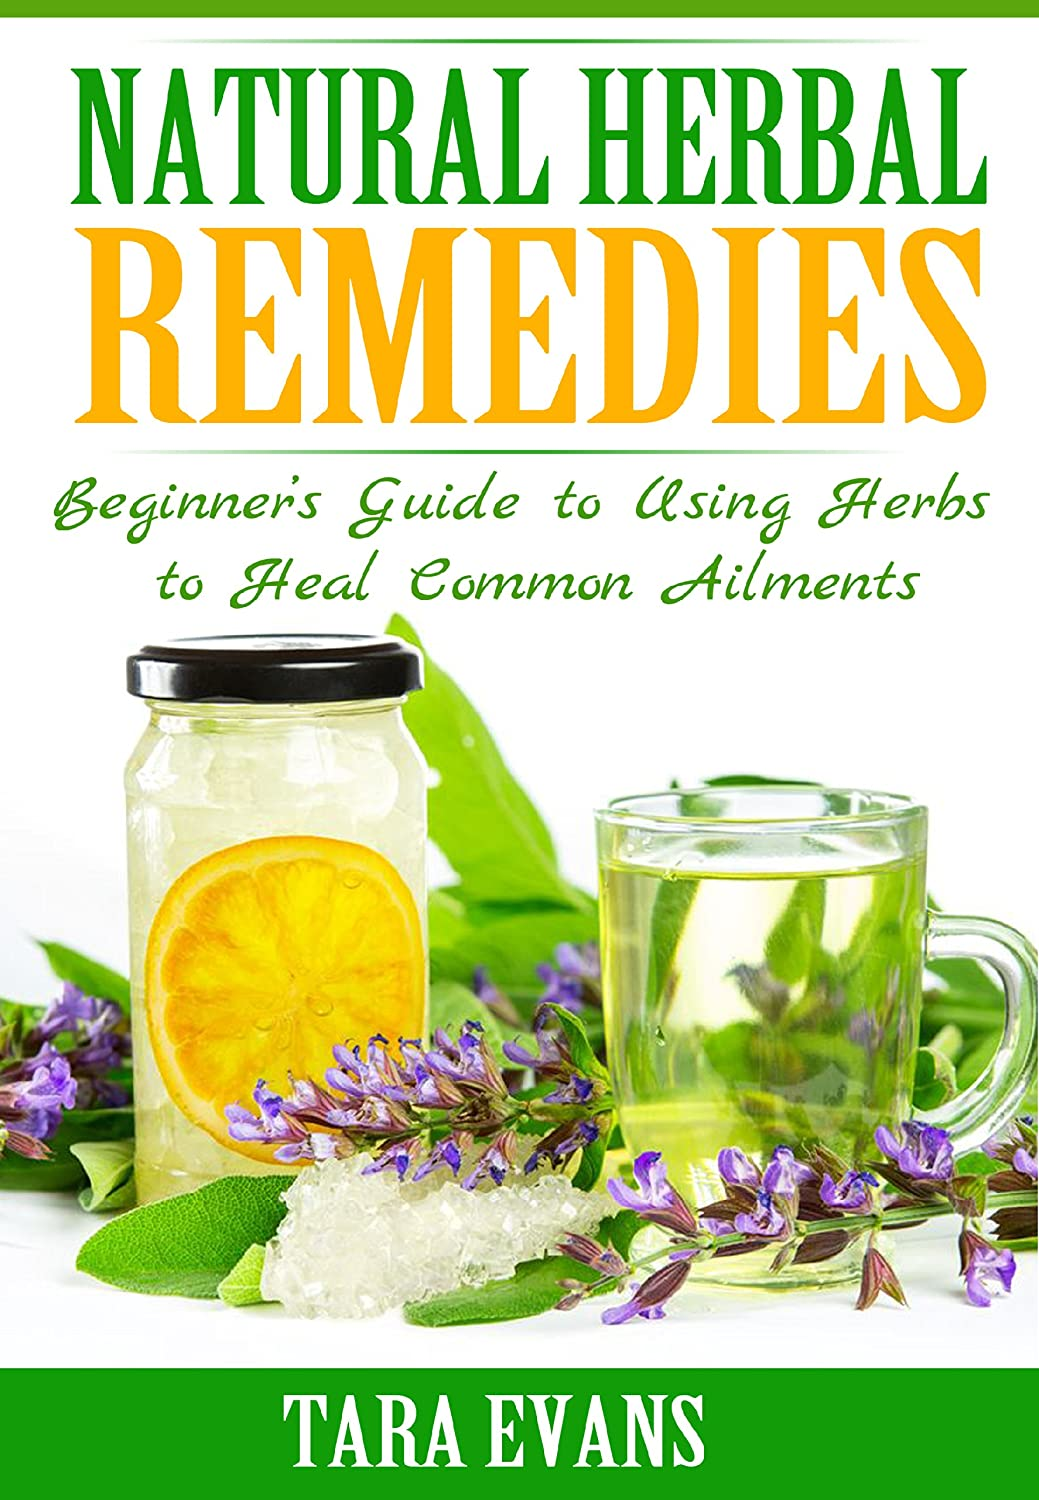 http://www.amazon.com/Natural-Herbal-Remedies-Beginners-Ailments-ebook/dp/B00KTQ9S8K/ref=as_sl_pc_ss_til?tag=lettfromahome-20&linkCode=w01&linkId=PAILKMCDFCWQ5SG2&creativeASIN=B00KTQ9S8K